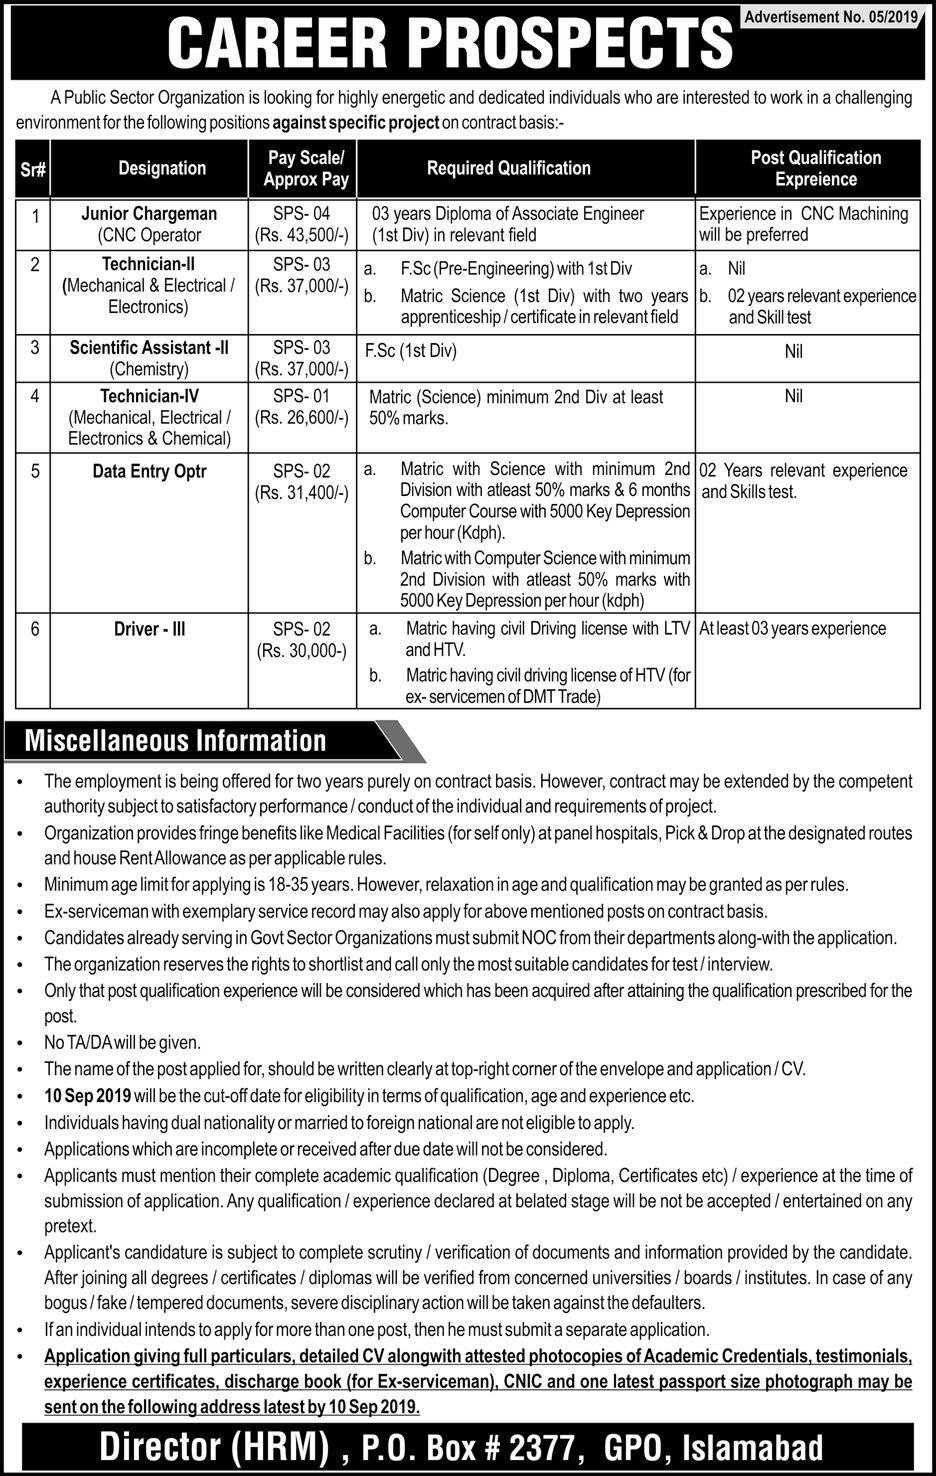 Advertisement for Public Sector Organization Islamabad Jobs